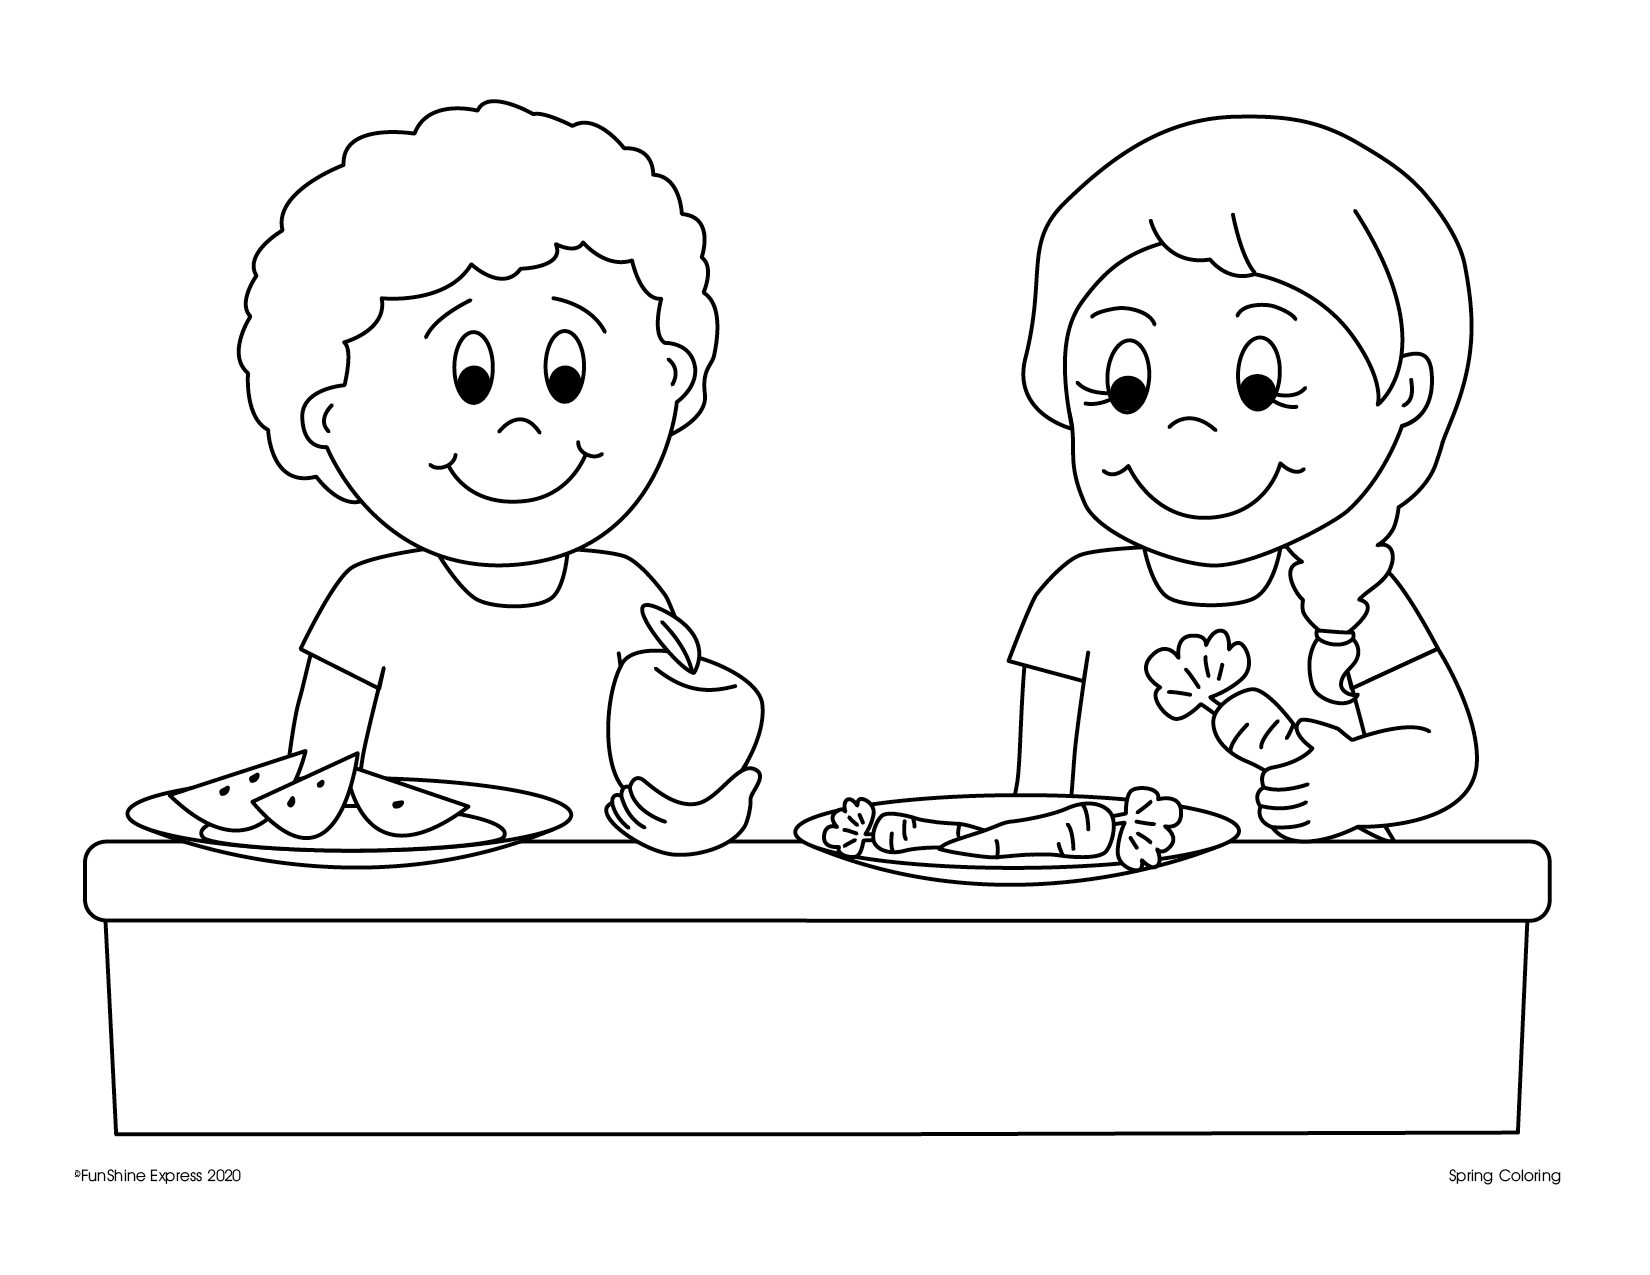 Coloring Page-Snack Time